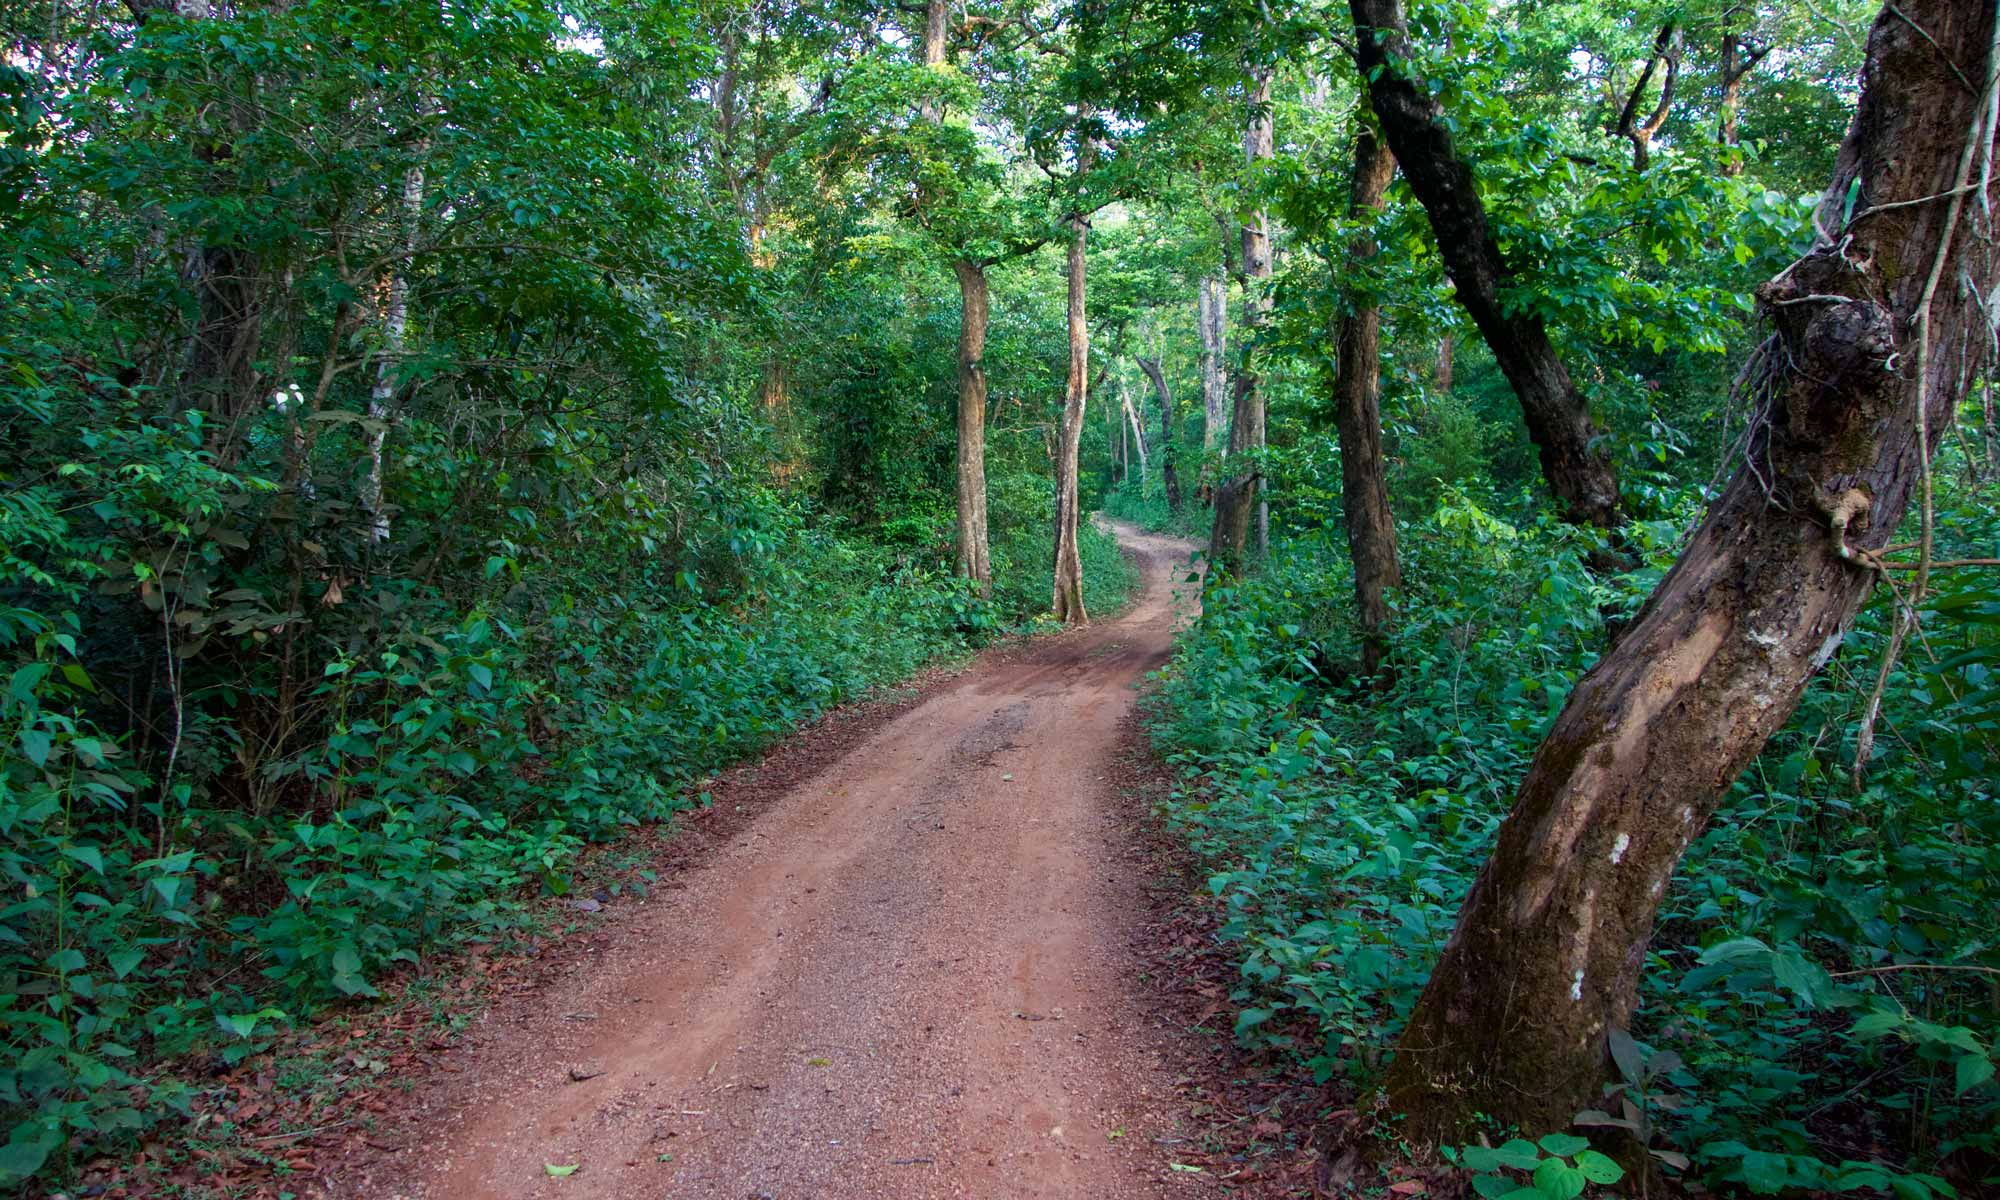 A Dusty Road Near the Home of Chiti